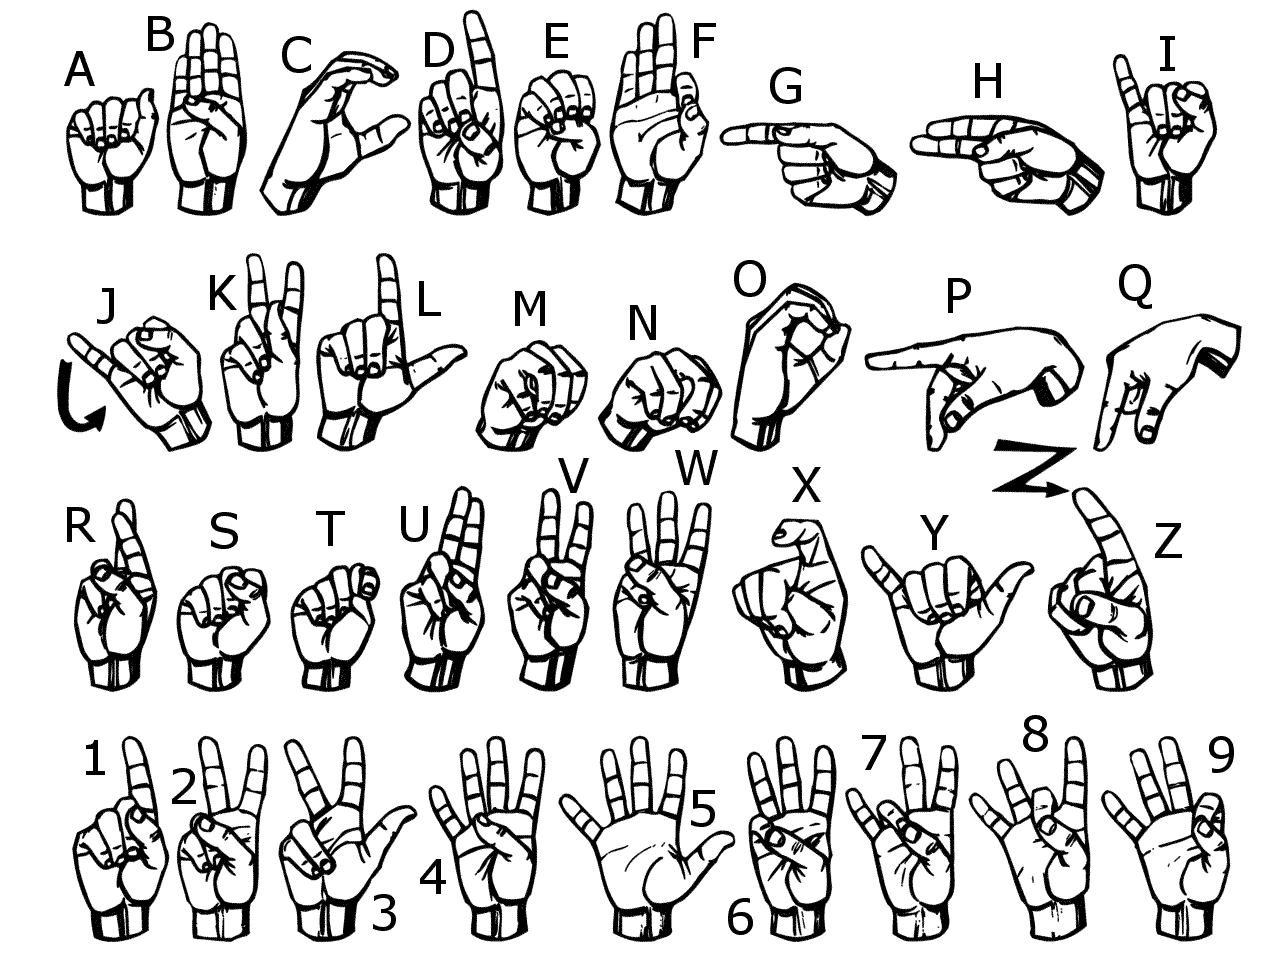 This image captures the letters, numbers, and their corresponding symbols used in American Sign Language.